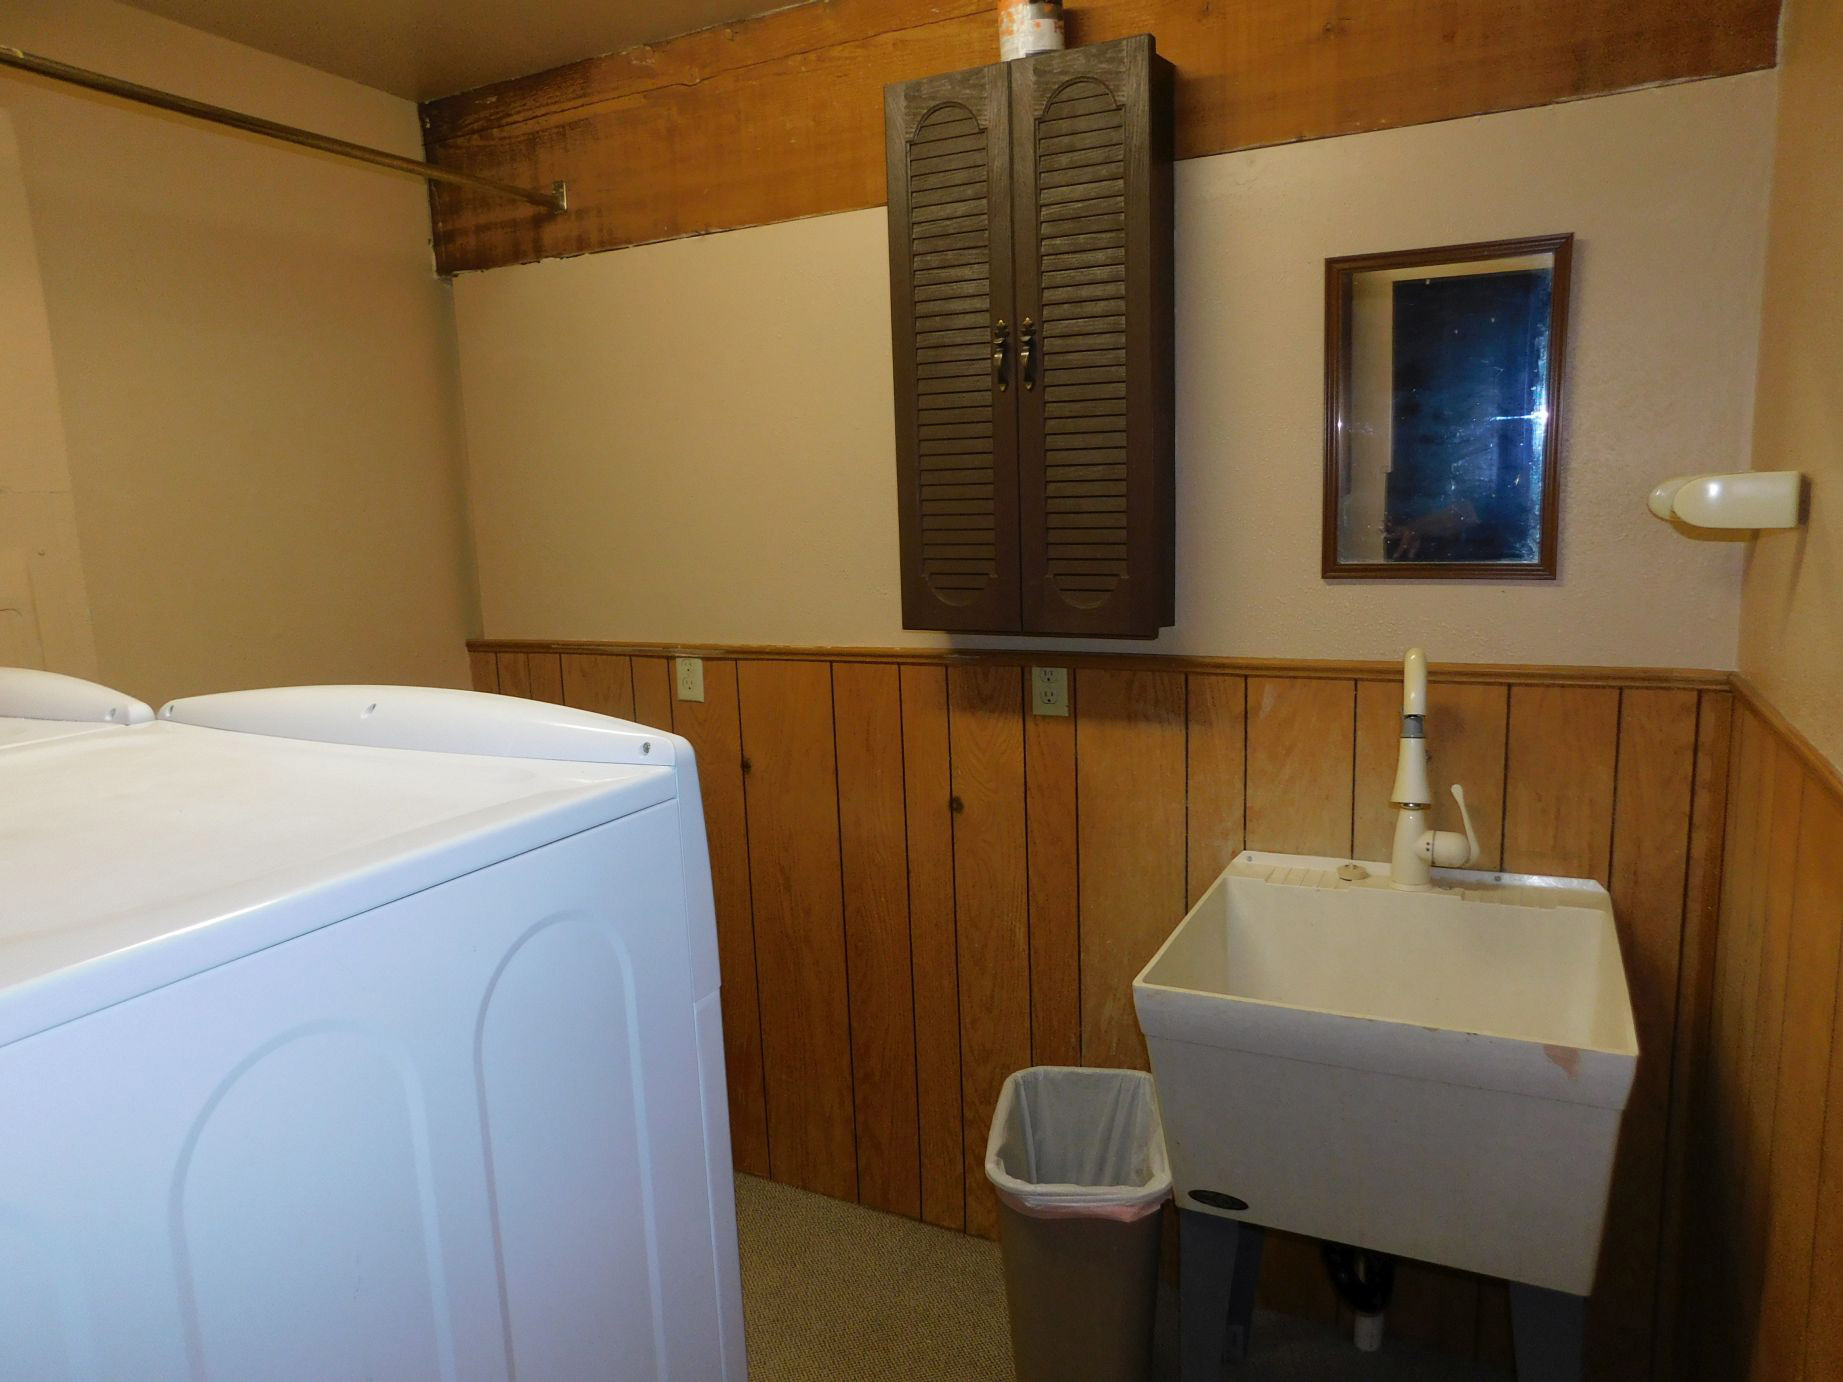 another-view-of-utility-room.jpg